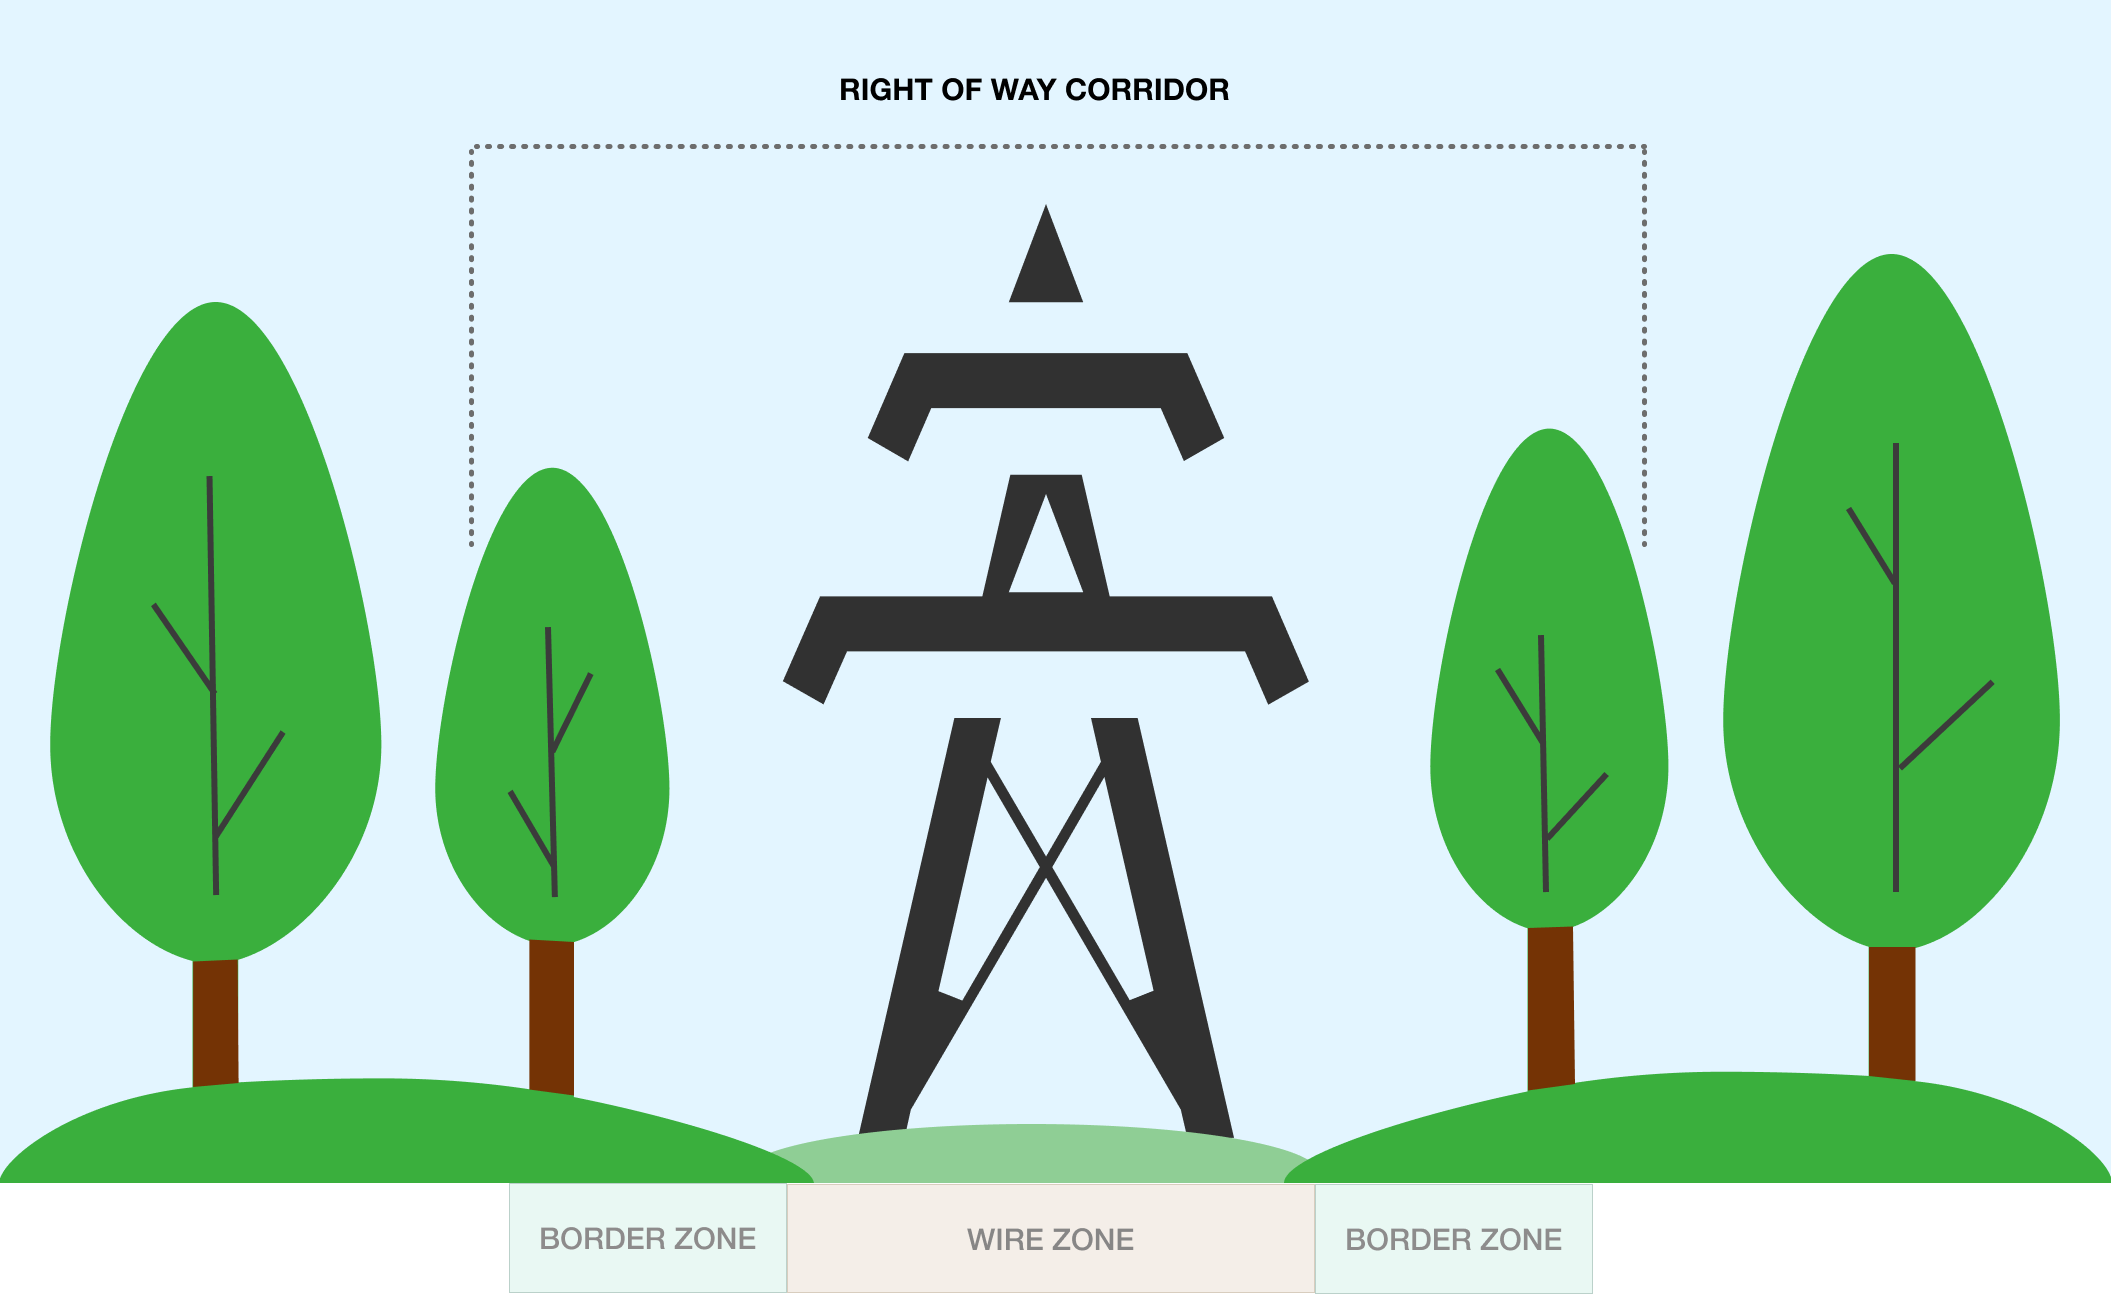 Right of Way Corridor for Power Lines